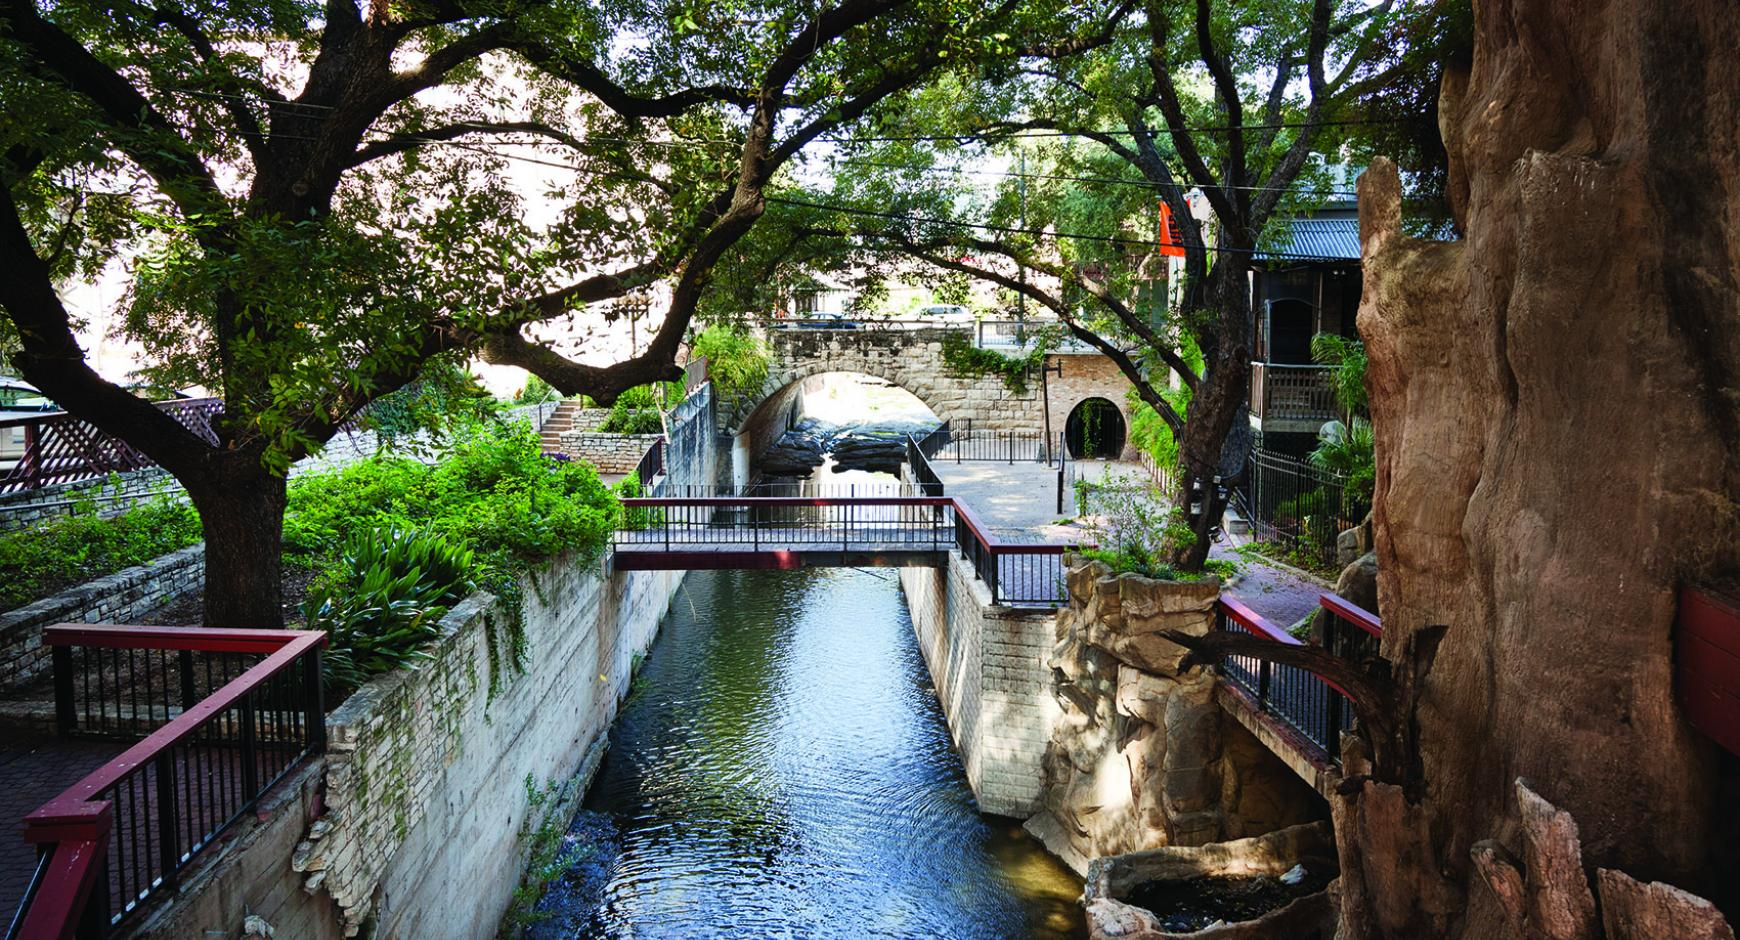 Waller Creek